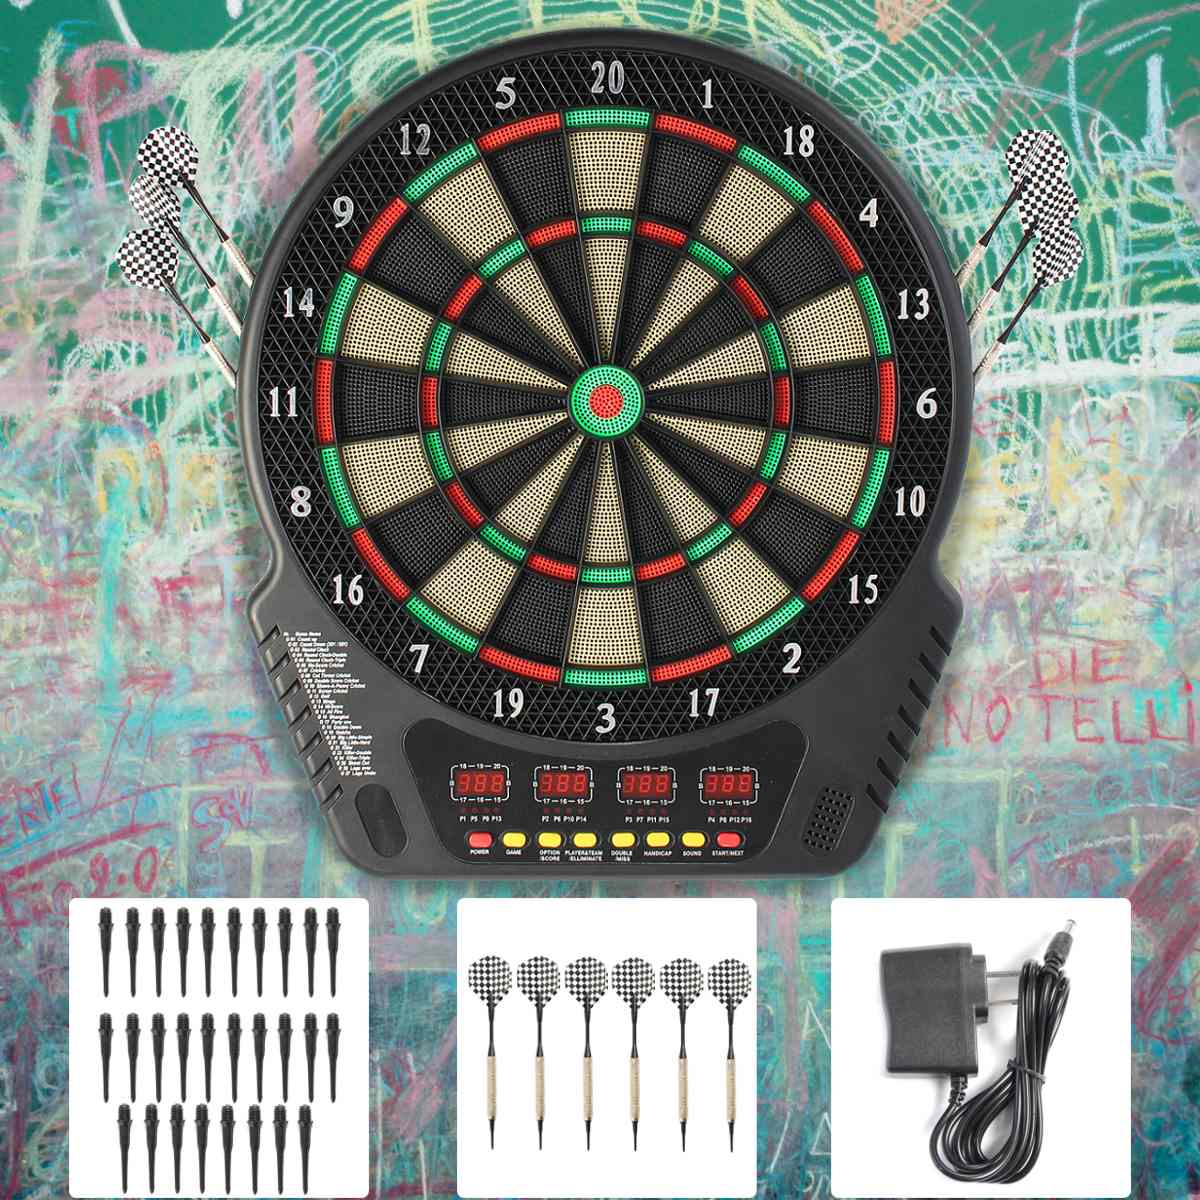 230V 18 Inch Professional Electronic Dart Board Bullseye 4 LED Display Play Methods With Electronic Dart Plastic Head Adapter